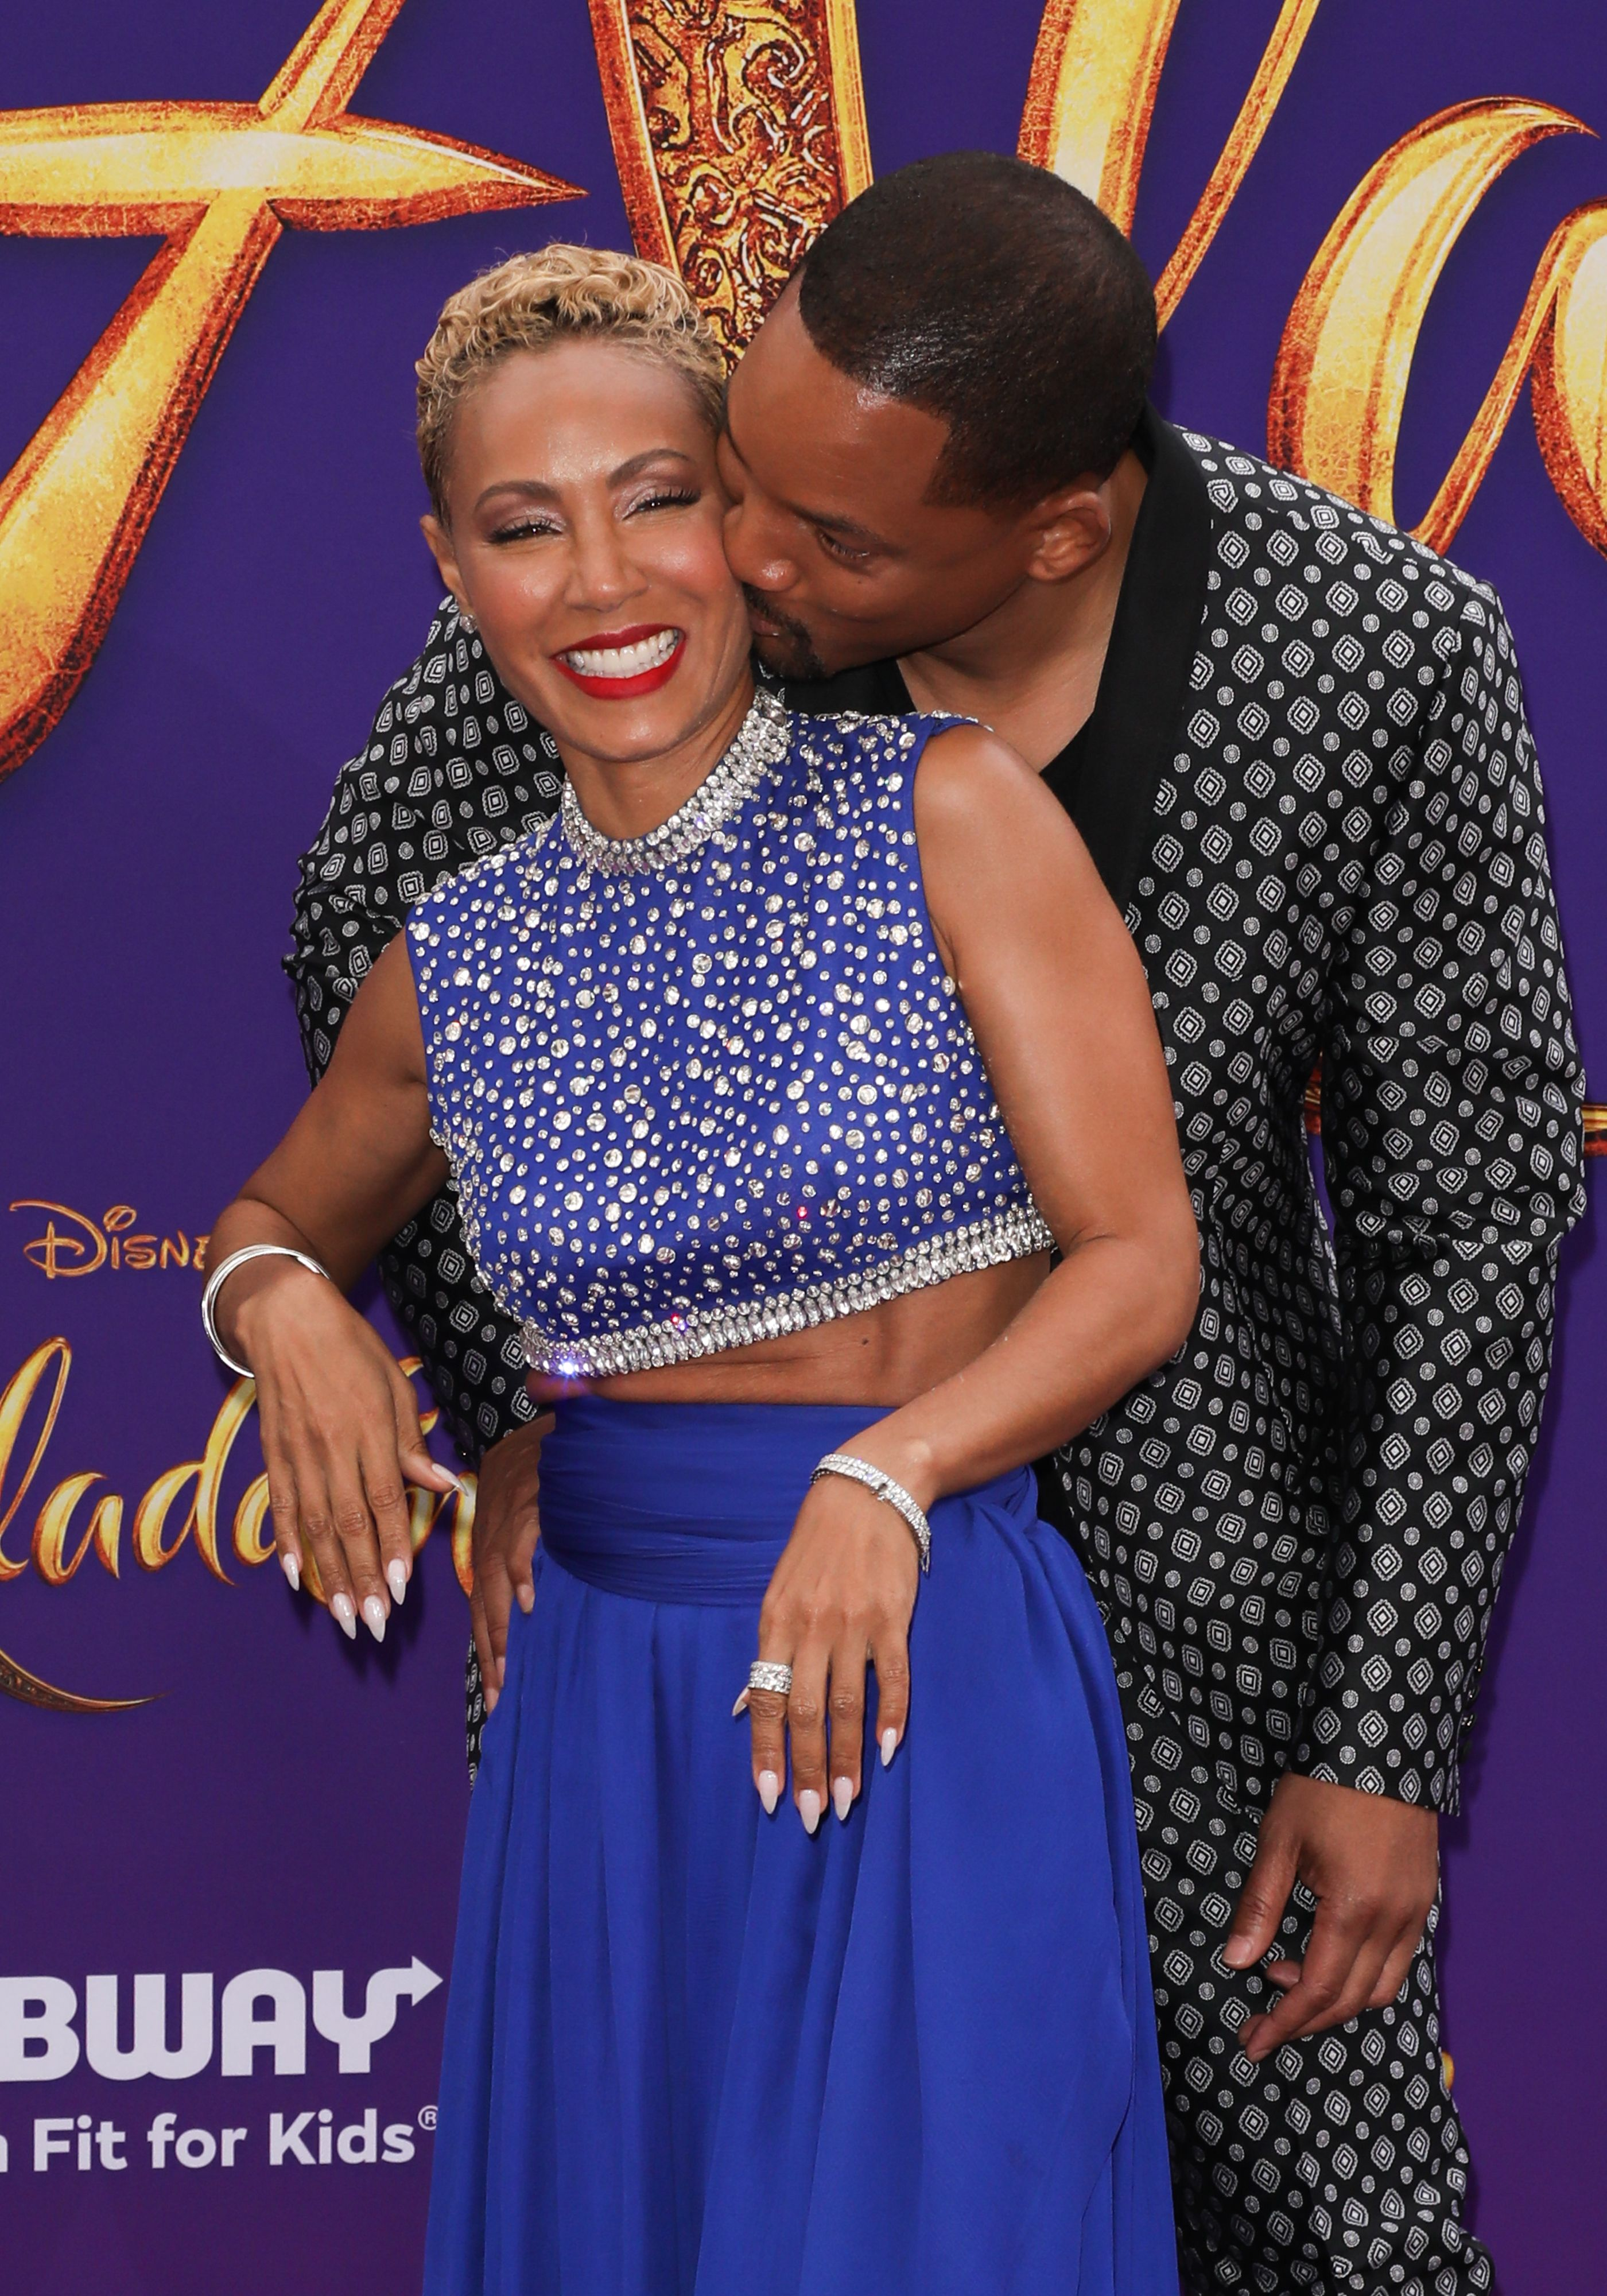 Jada Pinkett Smith Says Sex Toys Are the Secret to Her and Will's Successful Marriage